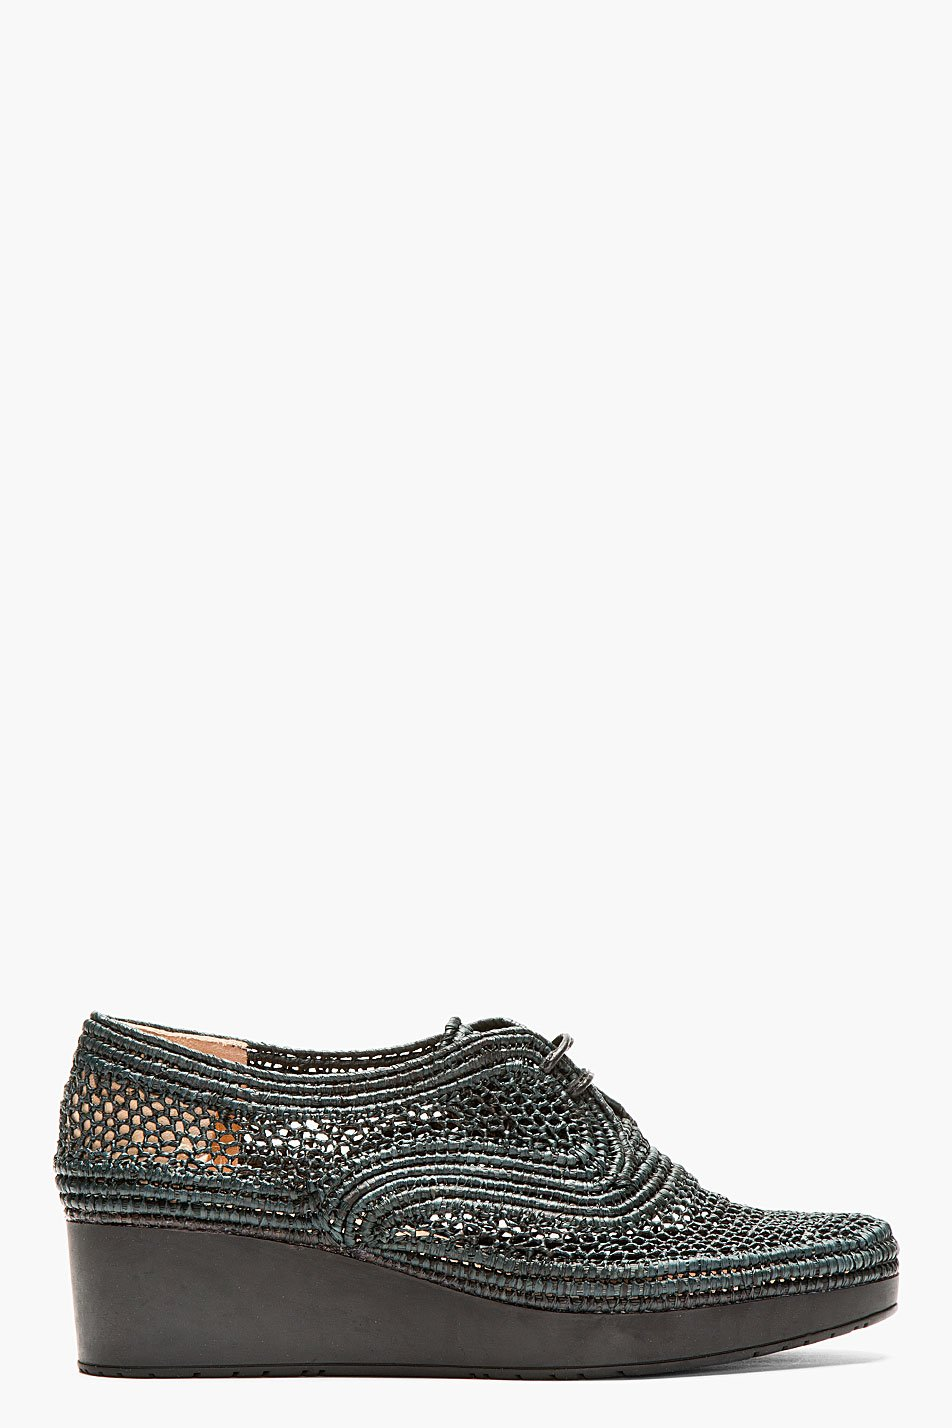 Robert clergerie black rafia braided vicoleg wedge shoes